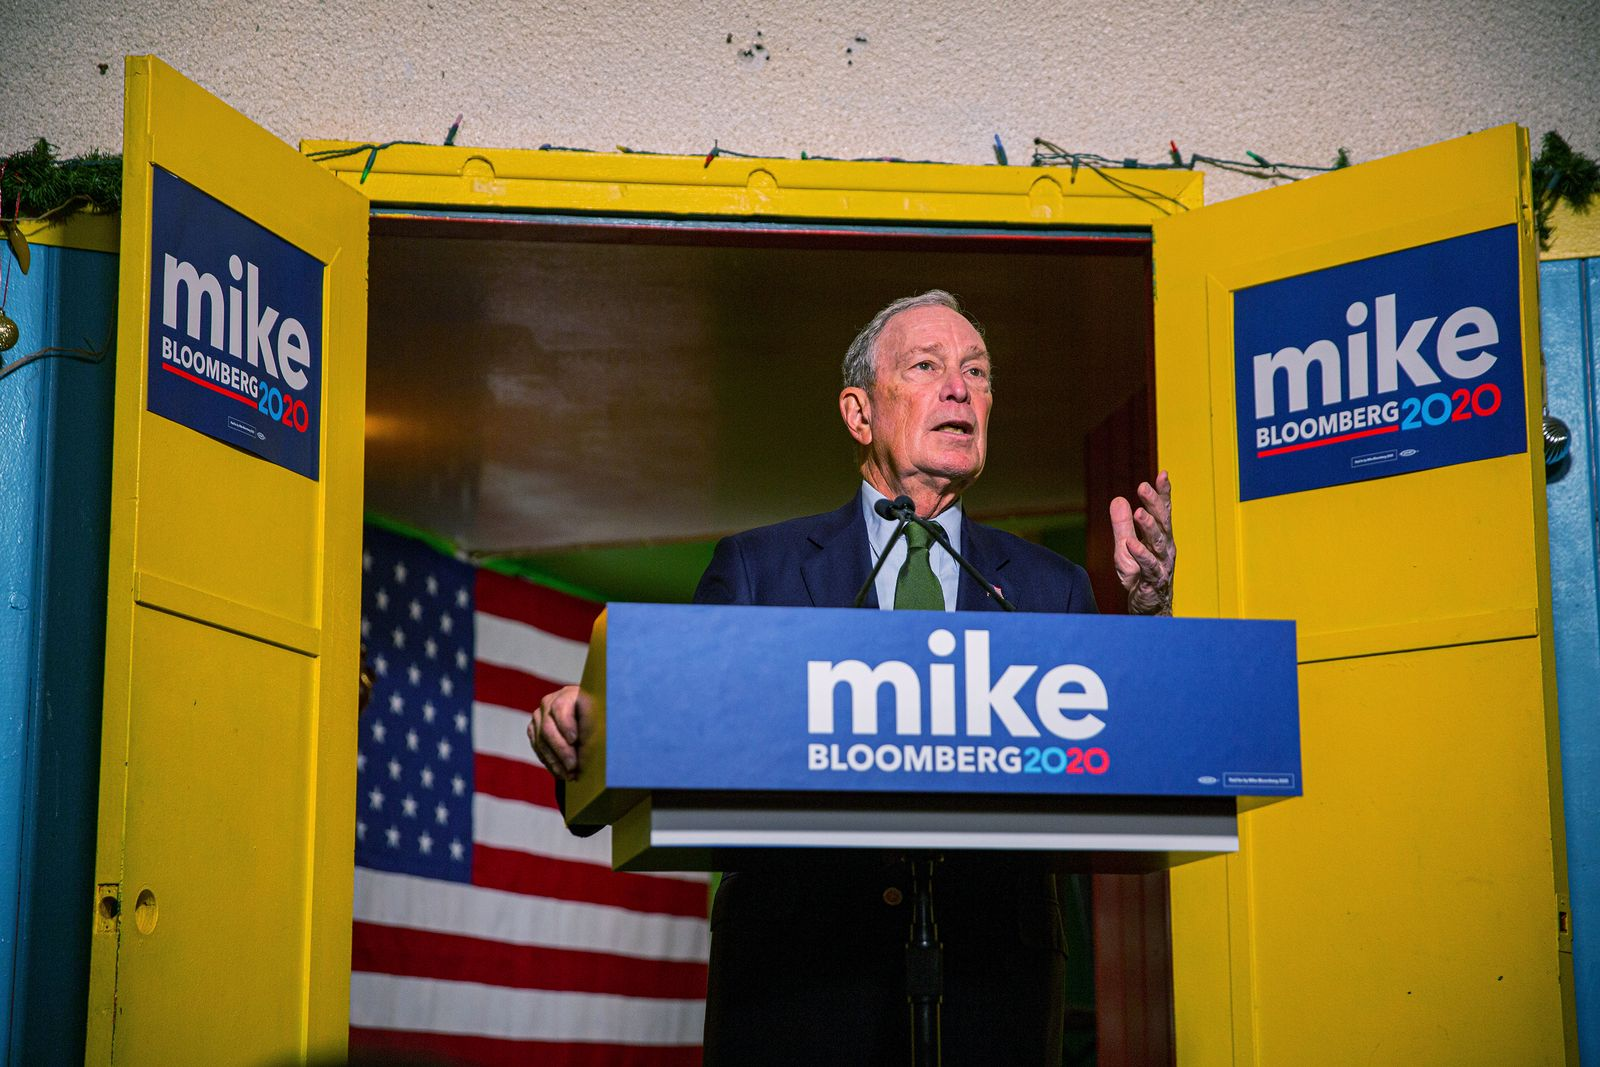 EINMALIGE VERWENDUNG EXPIREN 05.12.2020 Mike Bloomberg, the former New York City mayor, speaks after filing for Arizona's Democratic presidential primary, at Rosita's Place in Phoenix, Nov. 26, 2019. (Caitlin O'Hara/The New York Times)